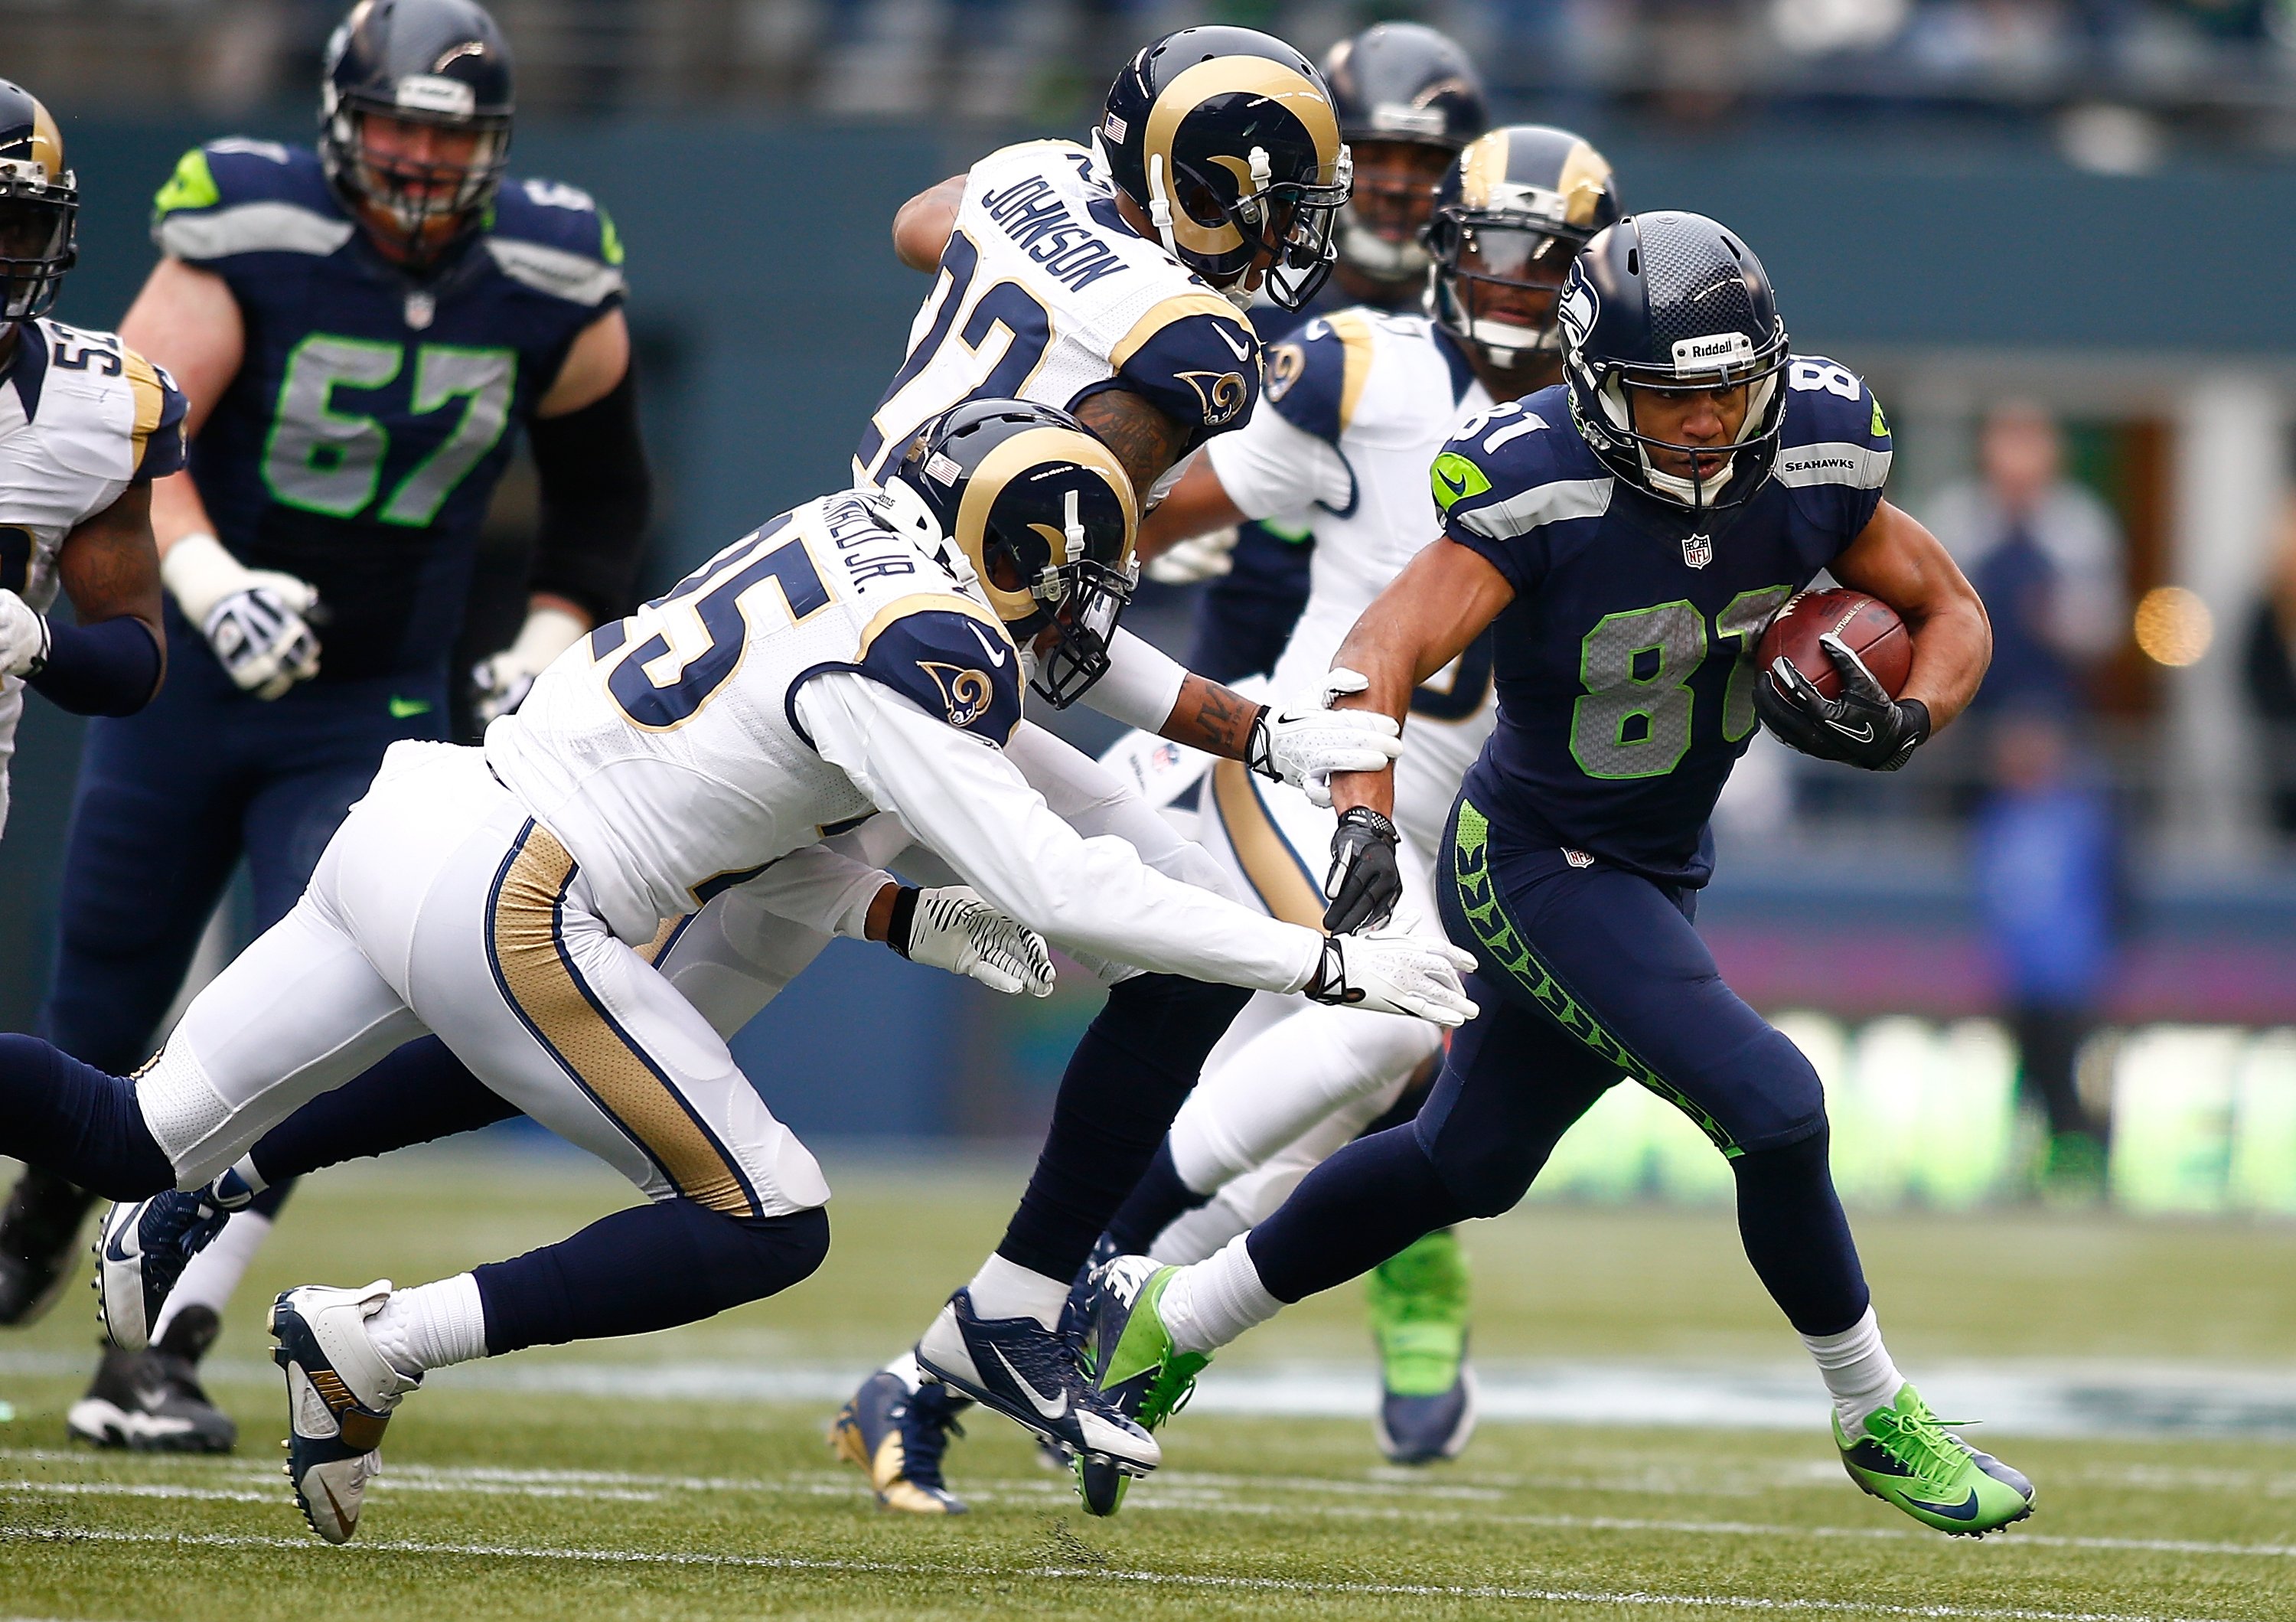 Seahawks wins NFC West, and No. 1 seed, with 20-6 victory